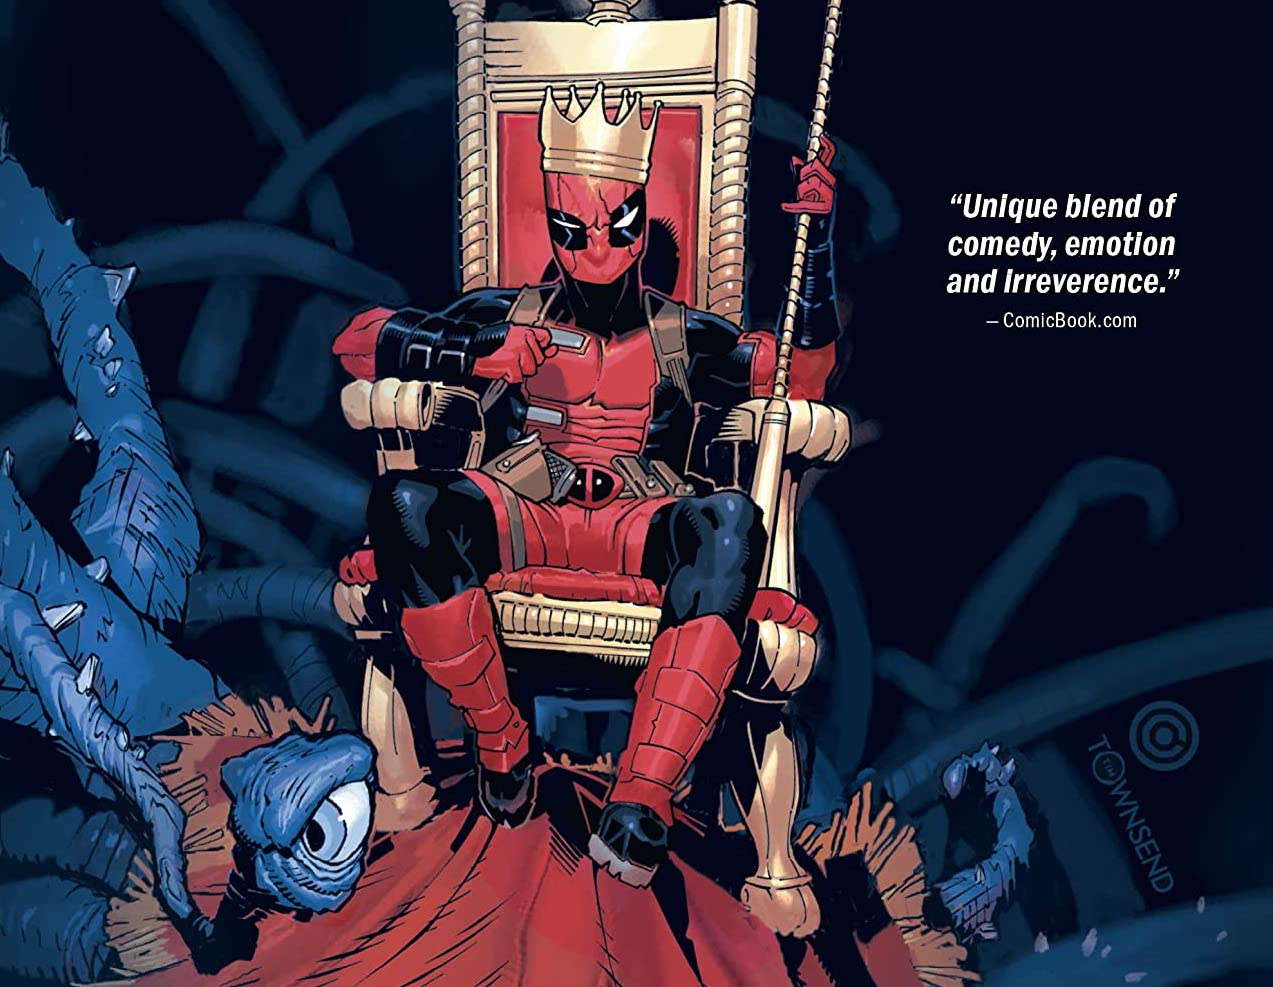 King Deadpool Vol. 1: Hail to the King